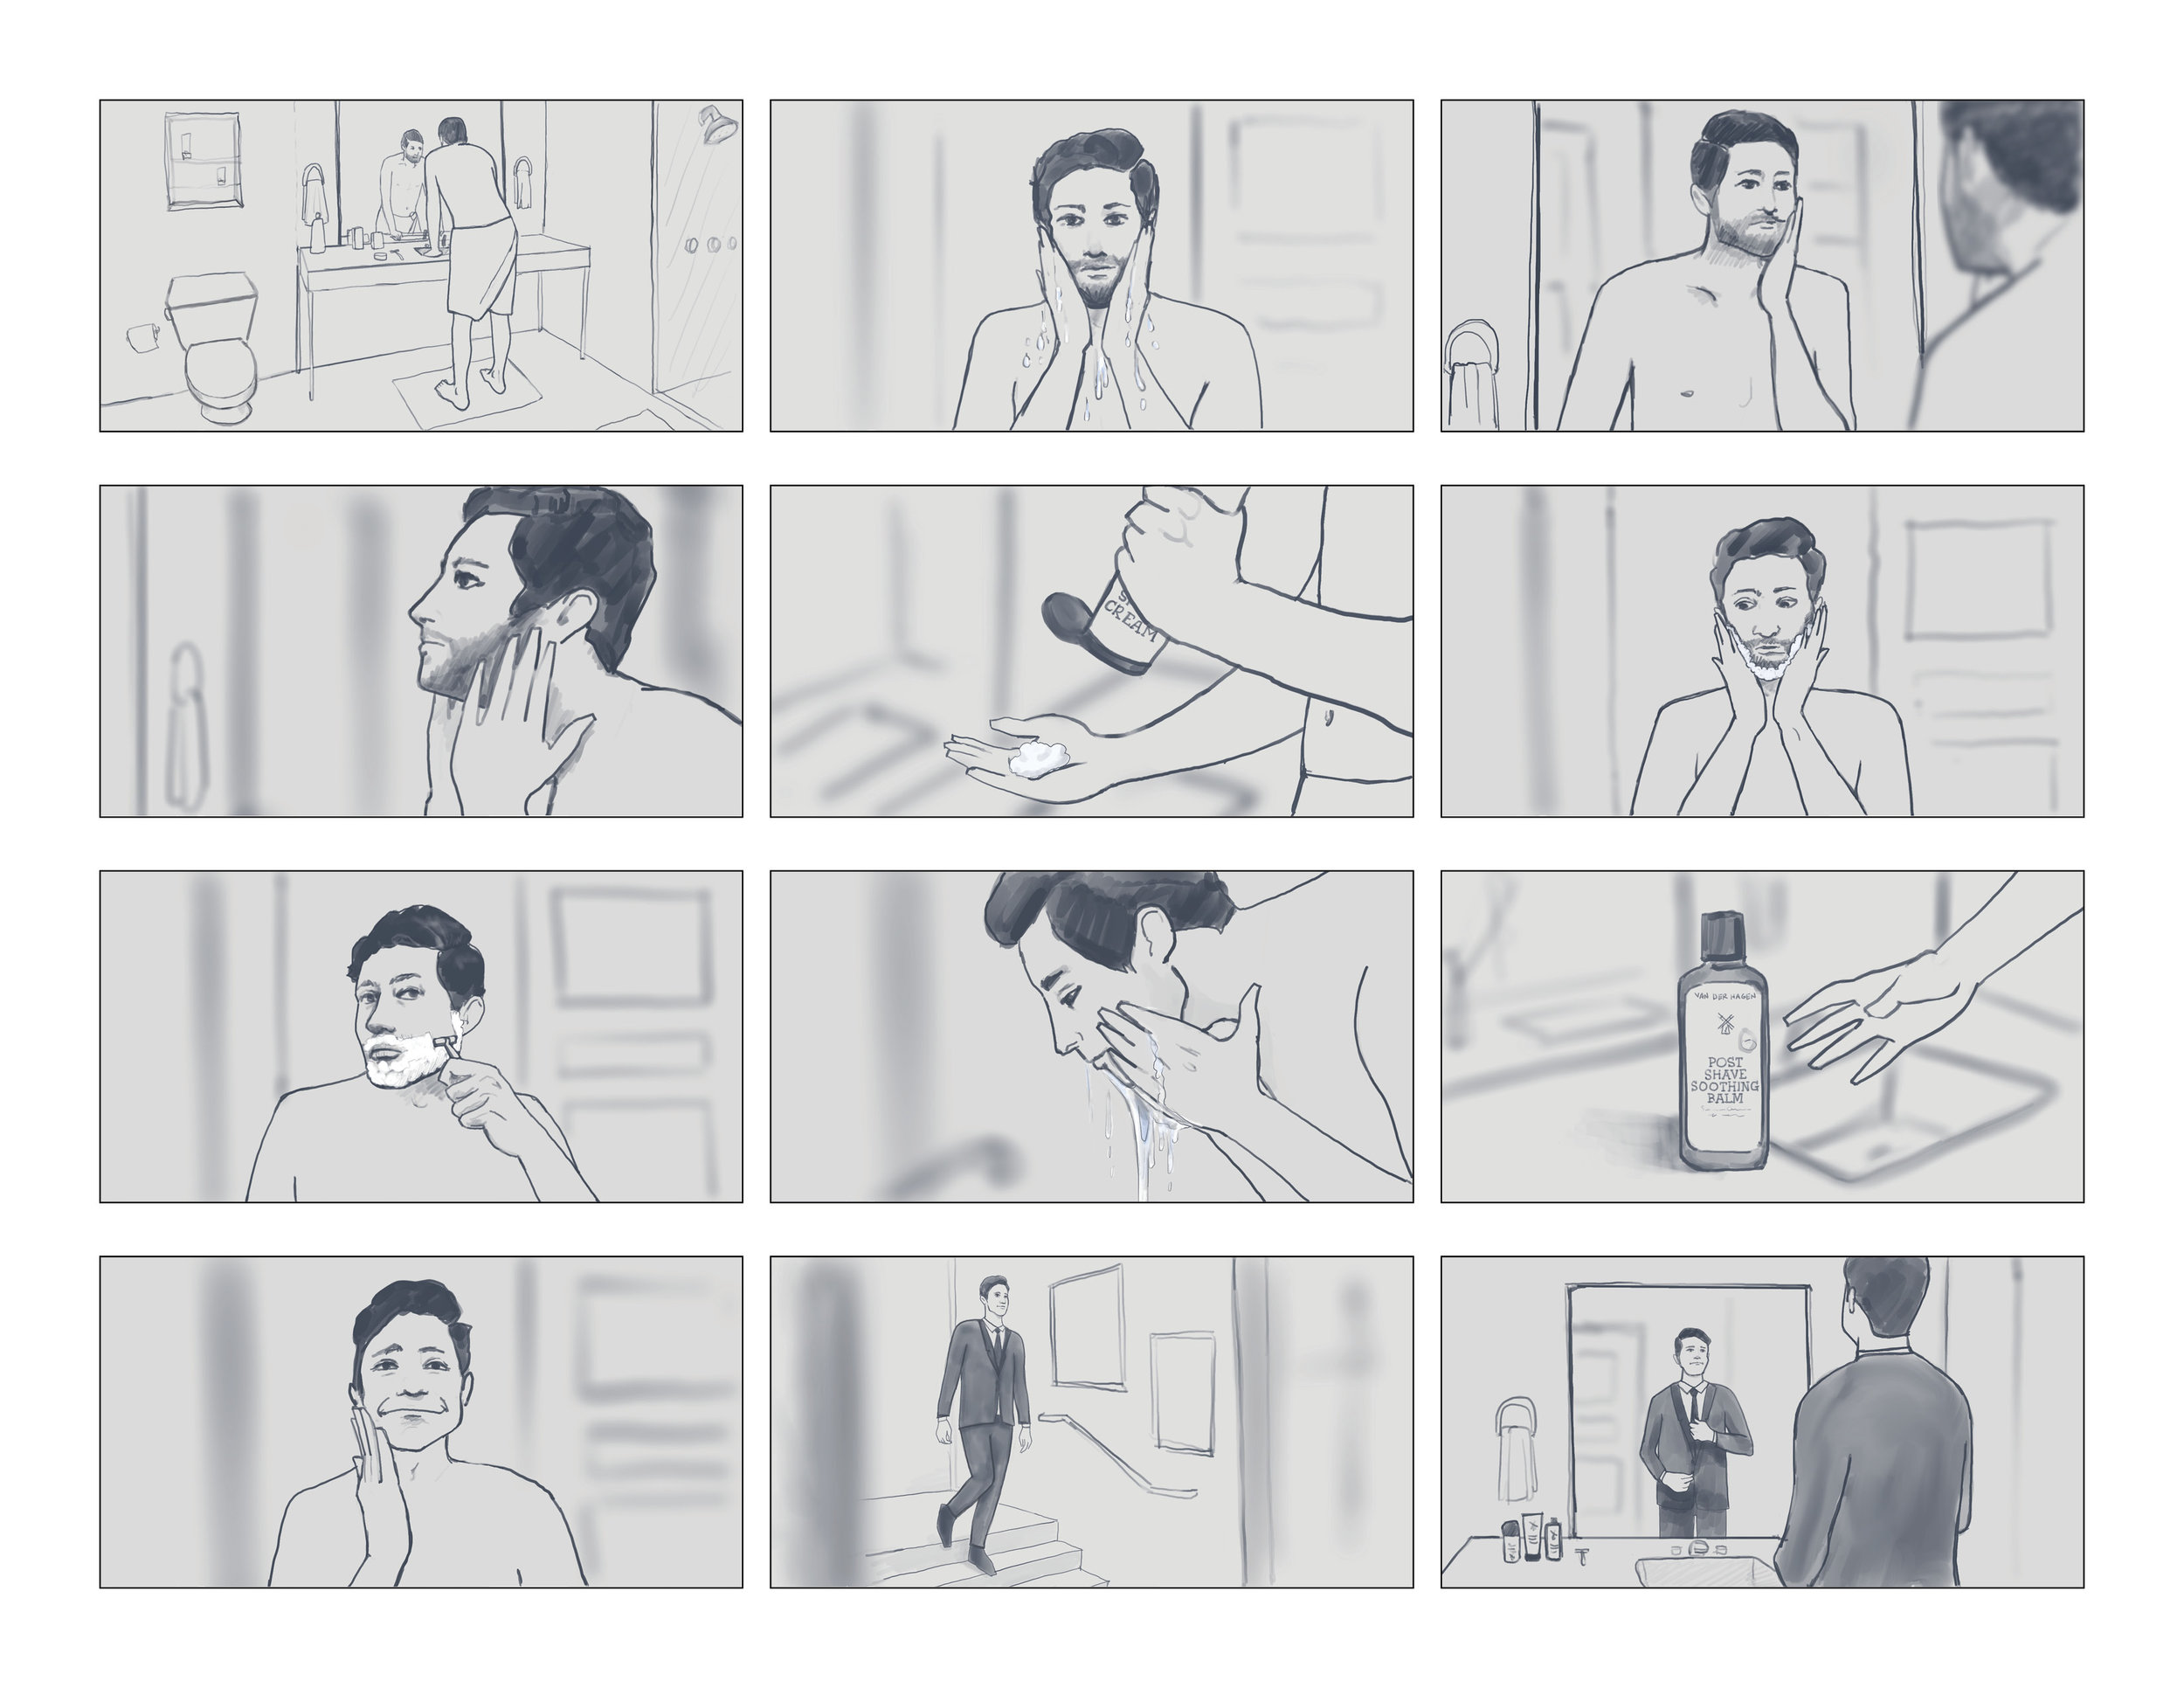 storyboards_for sq space22.jpg